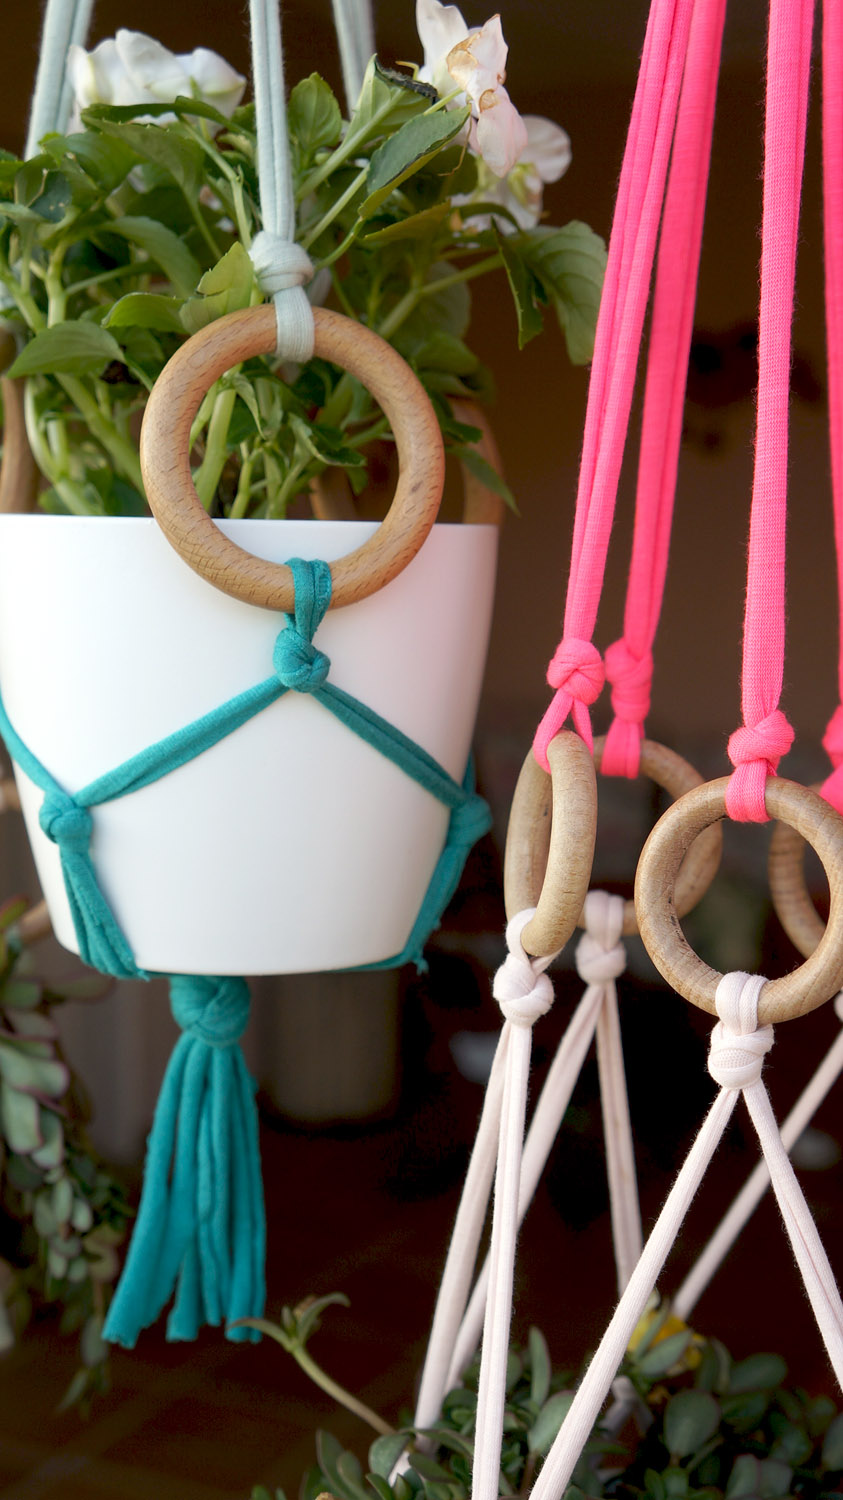 Diy maceteros colgantes de trapillo decoraci n online for Decoracion online